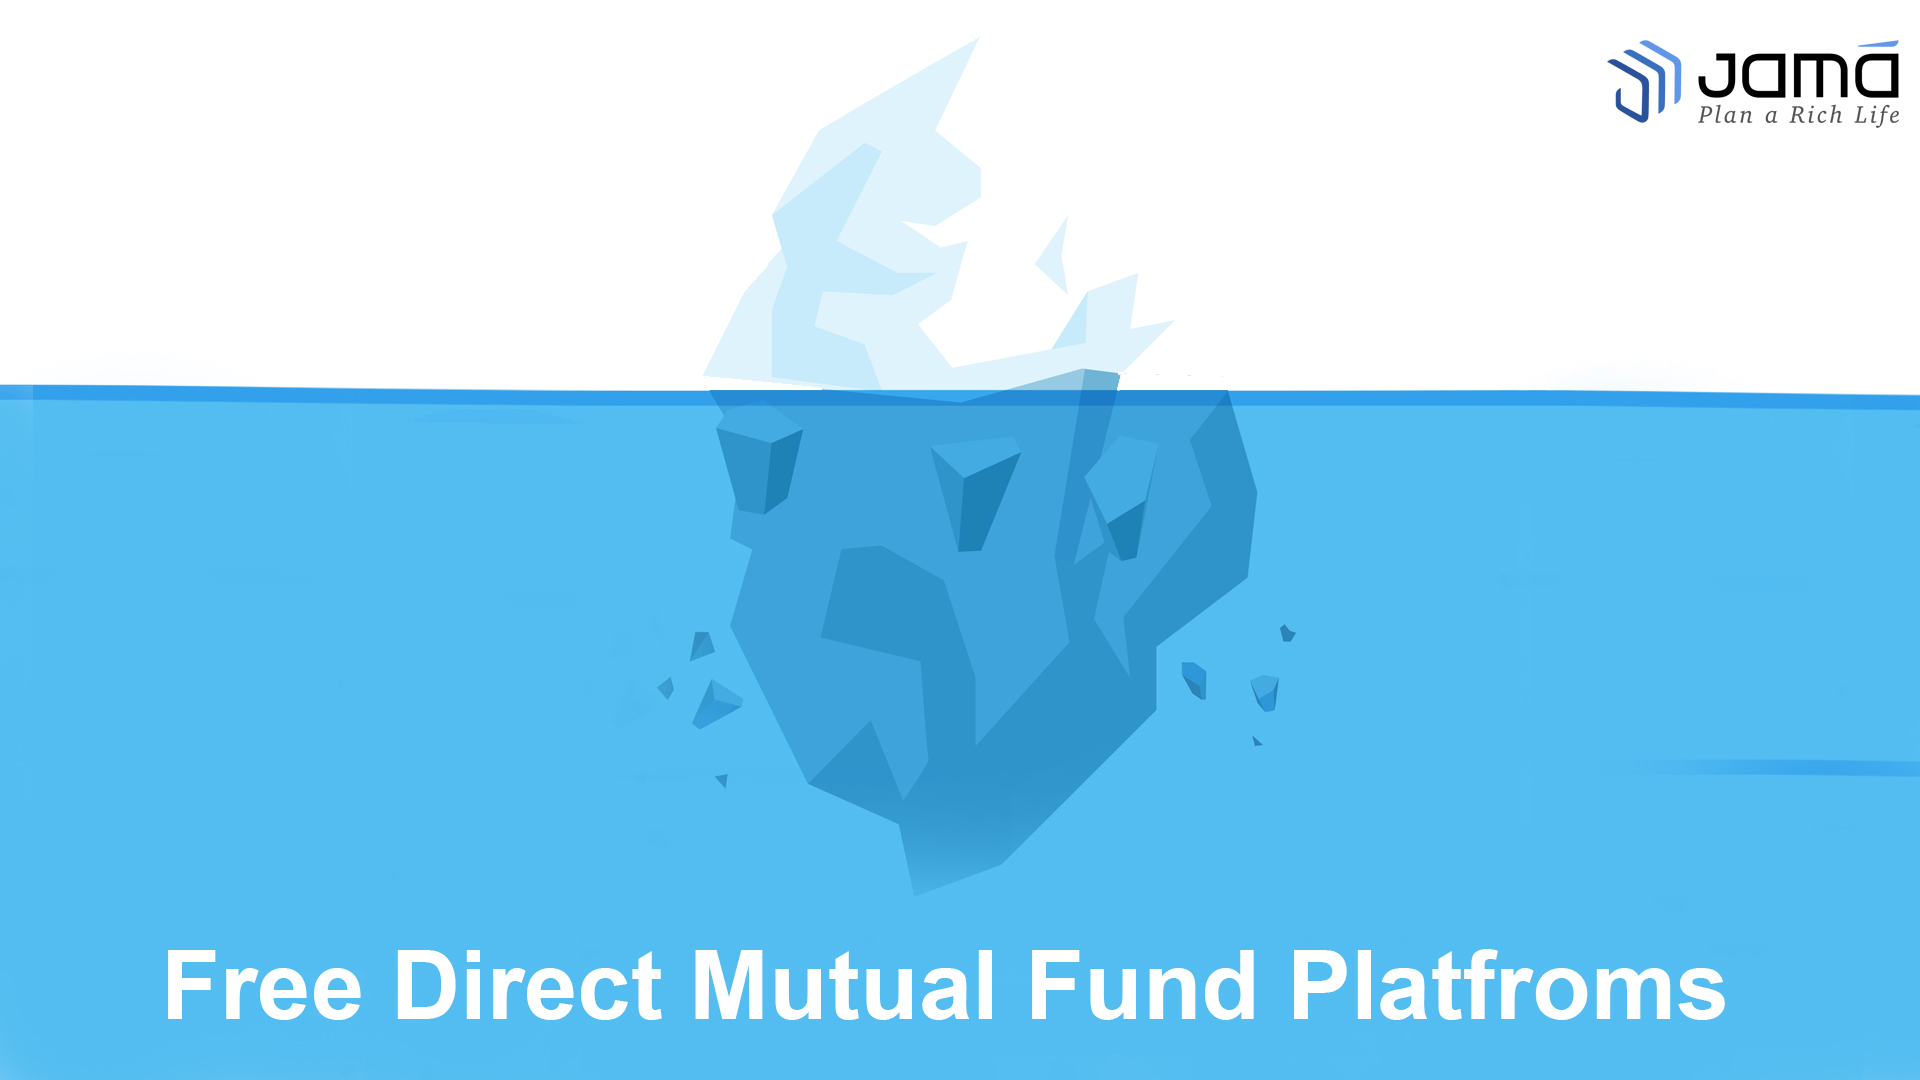 Are Free Direct Mutual Fund Platforms For Real?